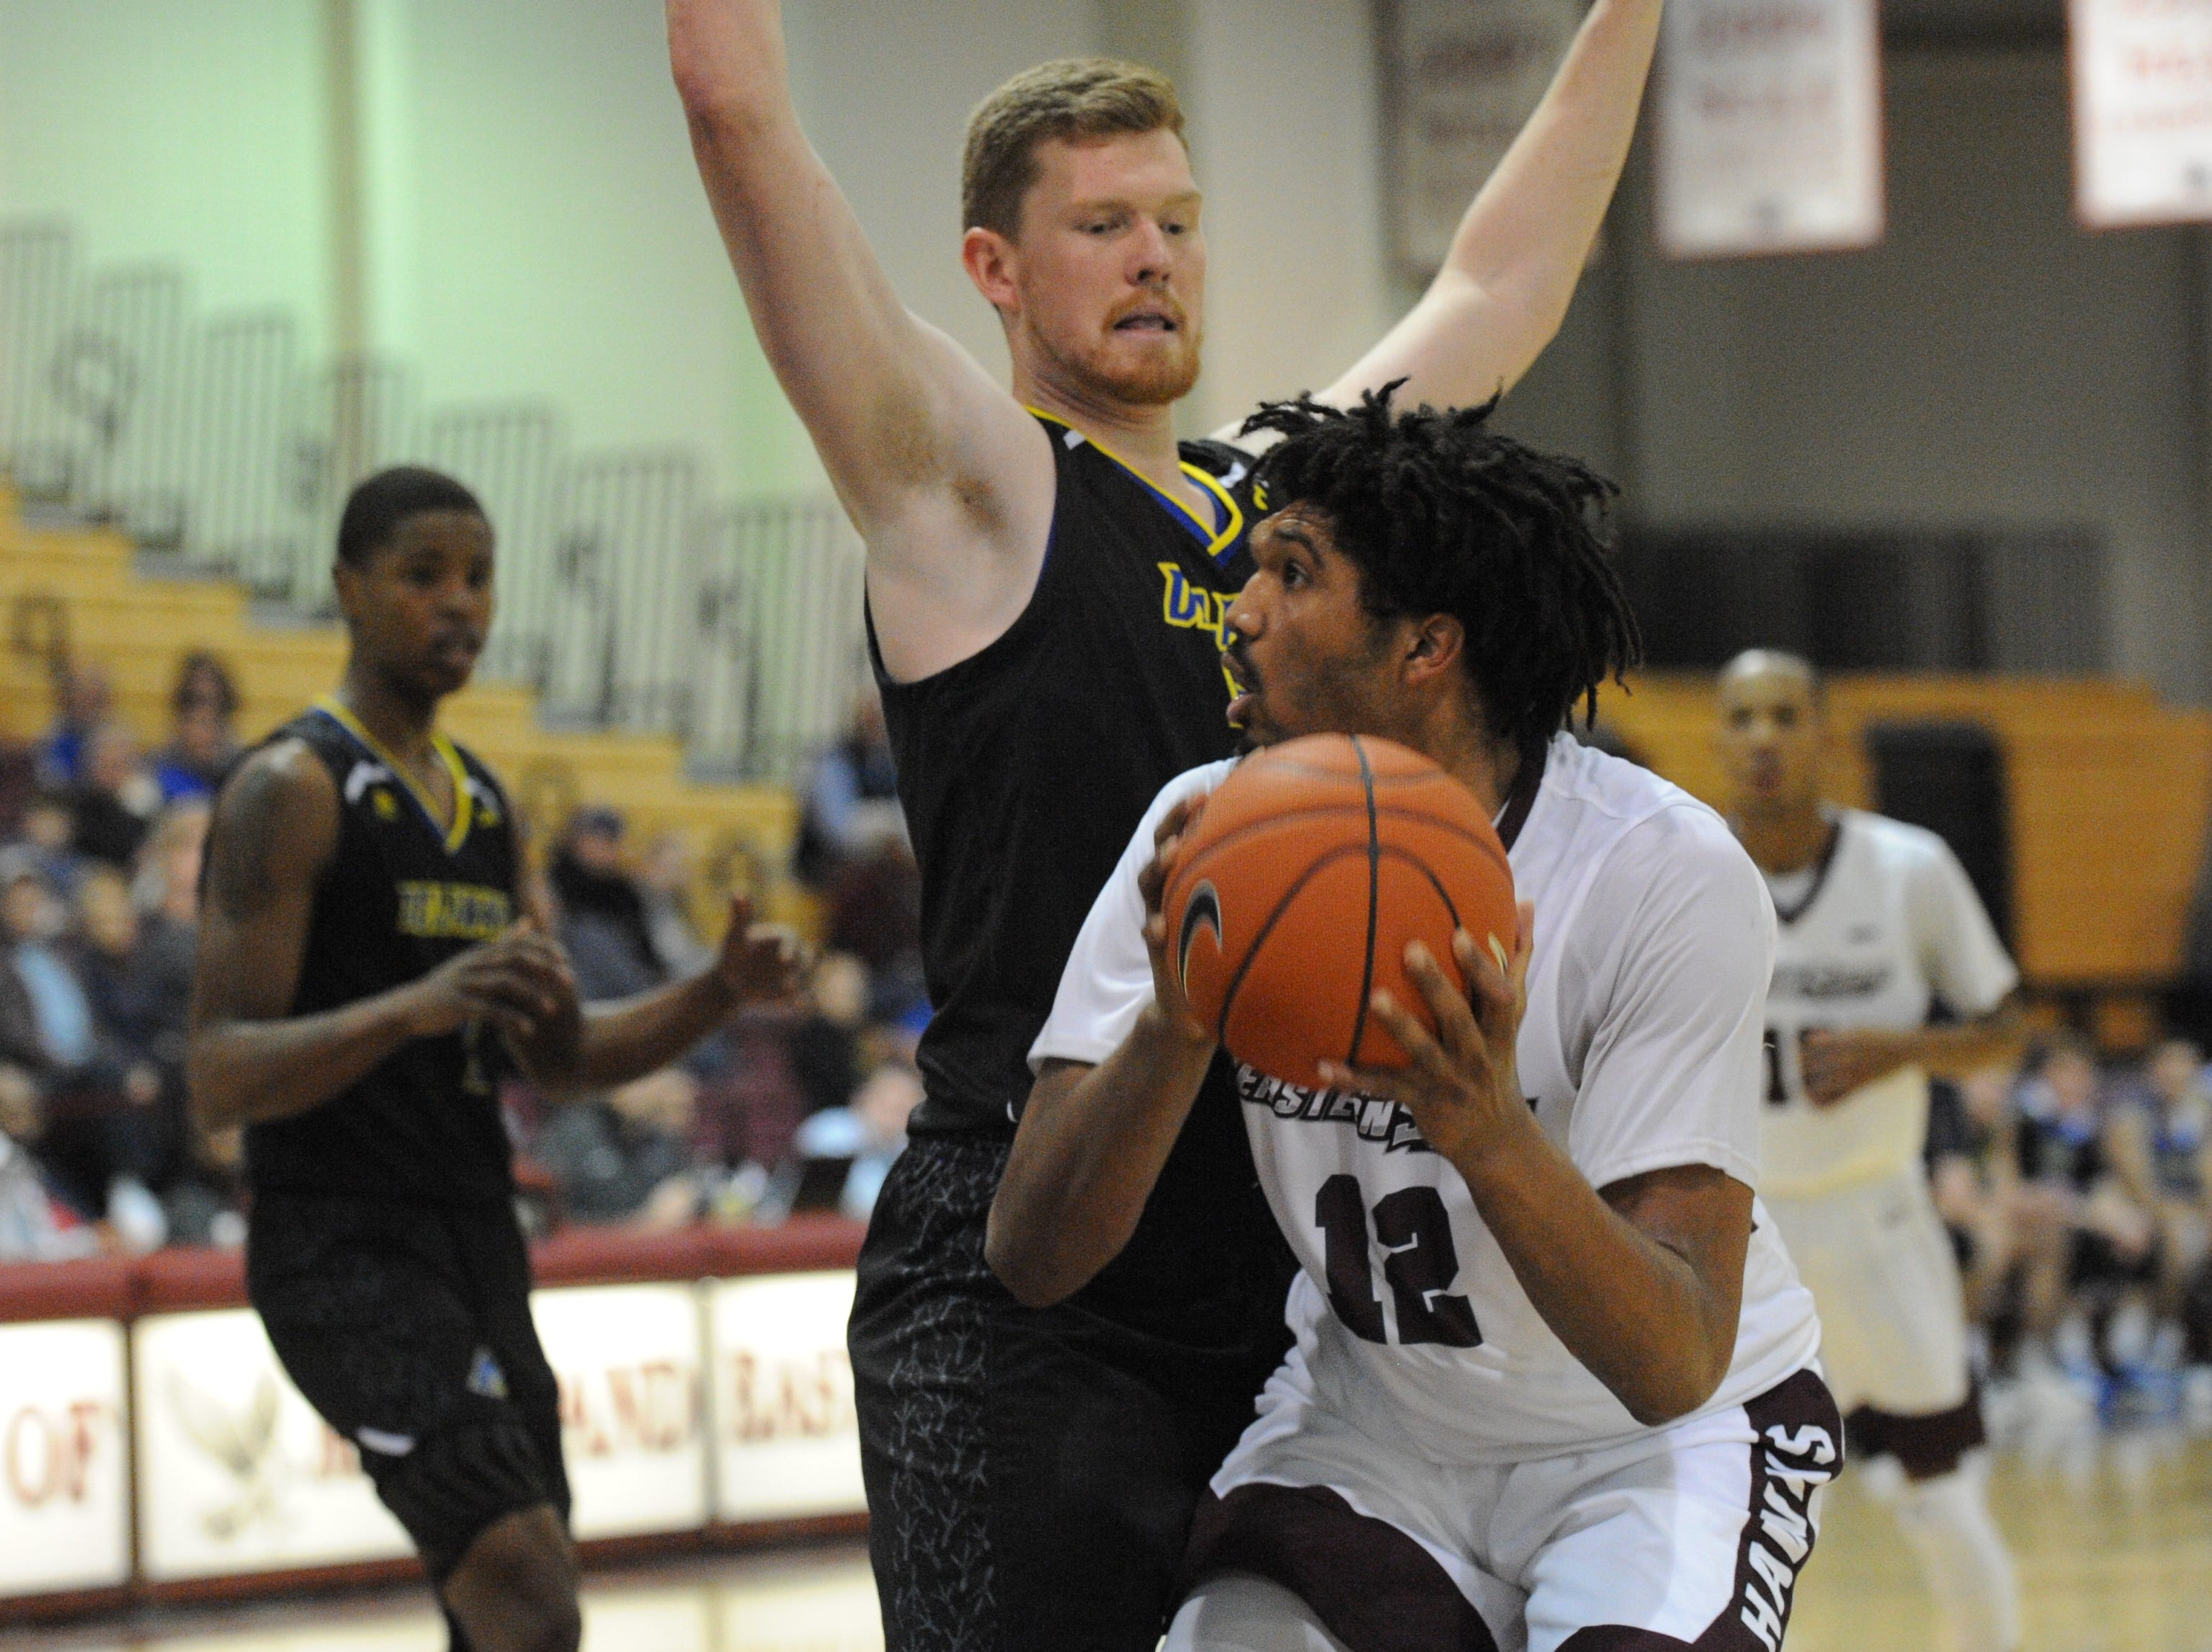 University of Maryland Eastern Shore forward A.J. Cheeseman looks to the net against the University of Delaware on Friday, Nov. 30, 2018. The Blue Hens beat the Hawks, 71-62.